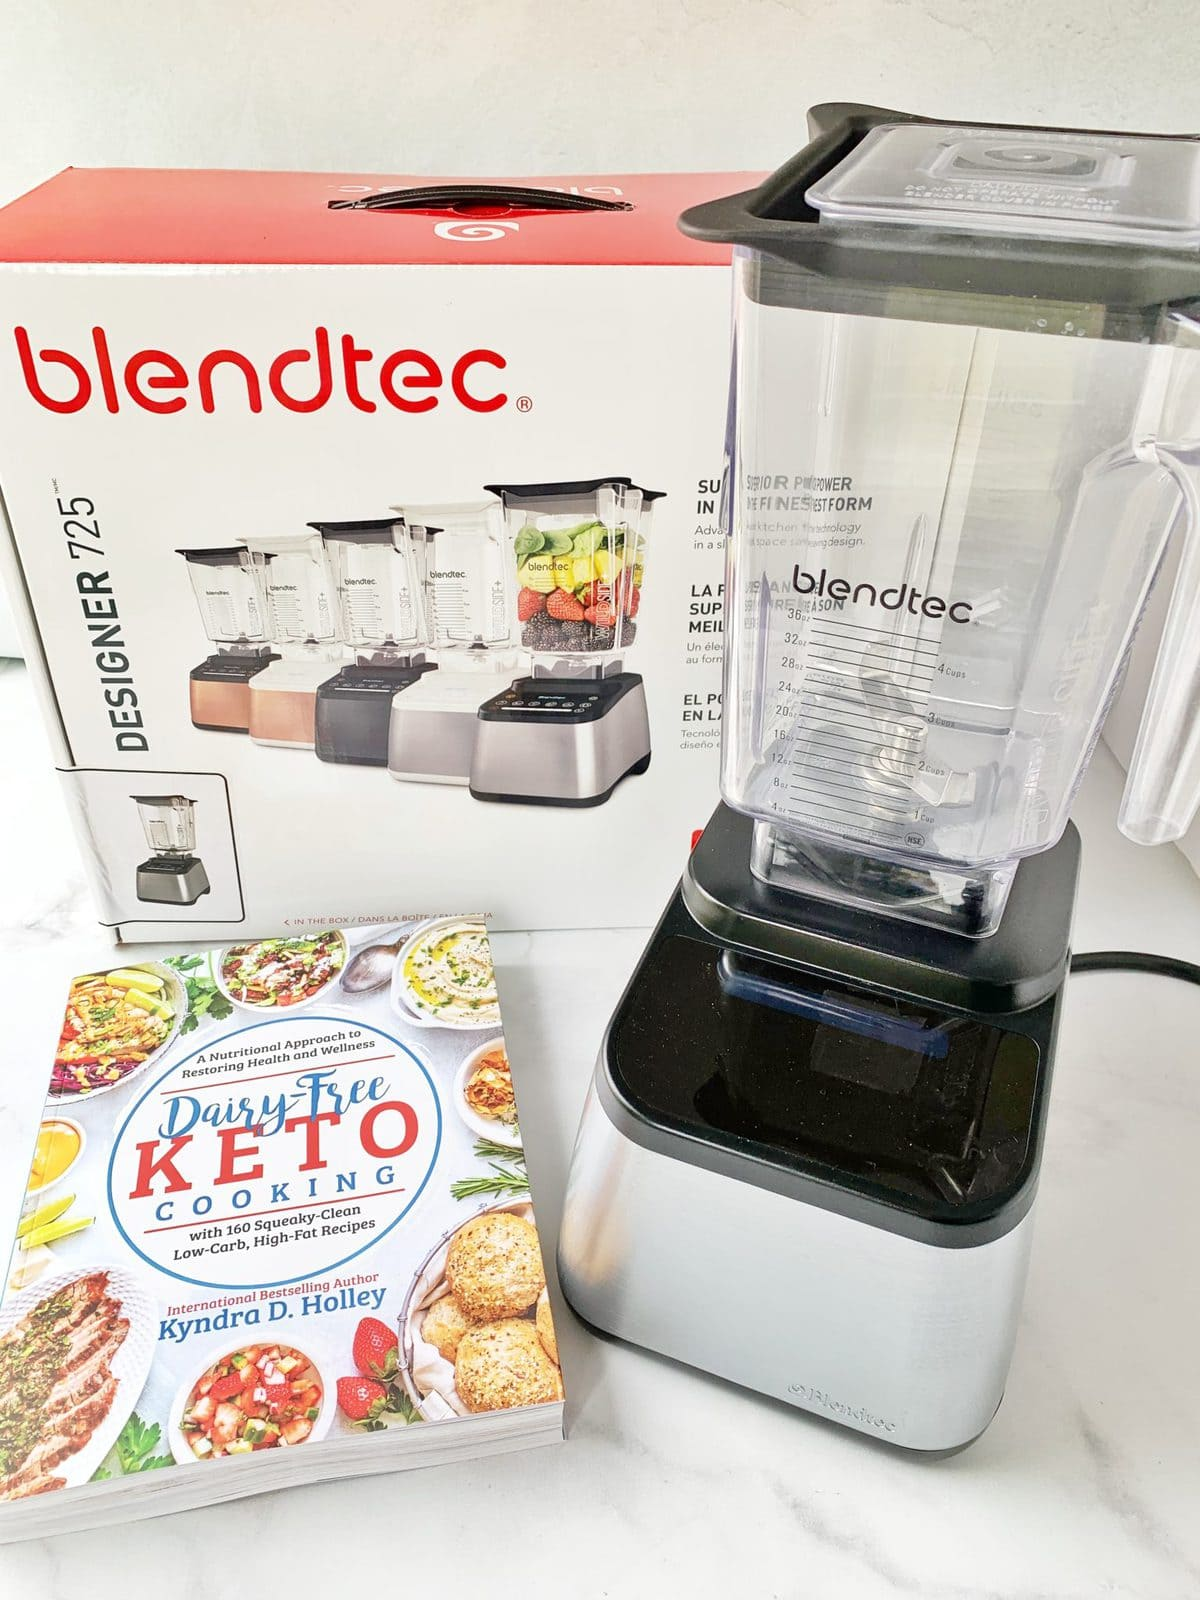 Dairy Free Keto Cooking GIVEAWAY Extravaganza - 11 Weeks of giveaways for the launch of my new book. Week 10 - Blendtec